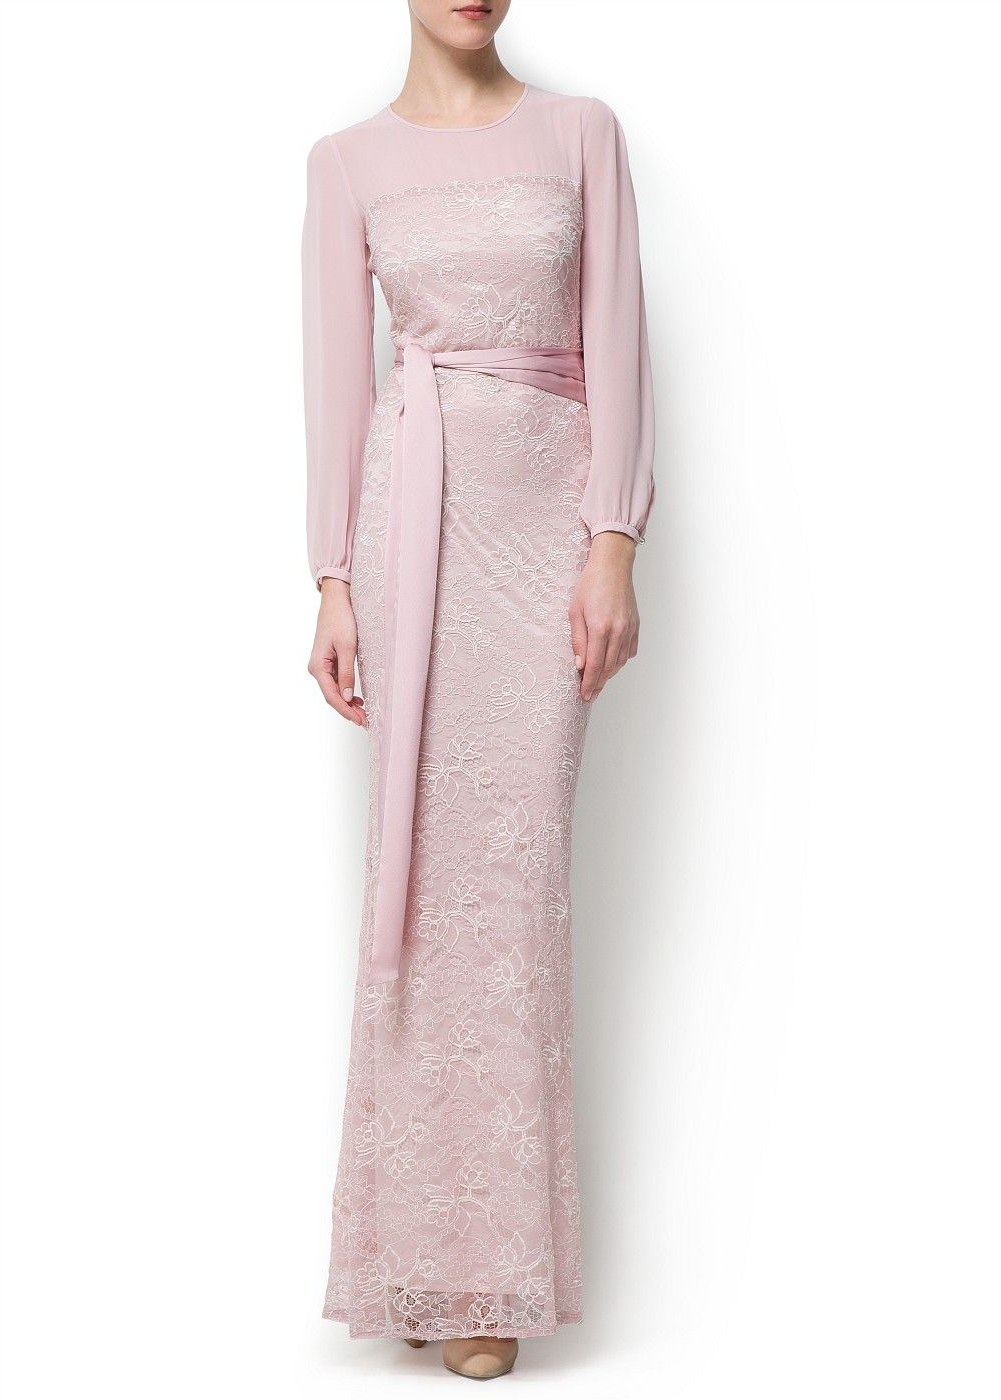 Ide Long Dress Bridesmaid Hijab O2d5 Lace Gown Woman In 2019